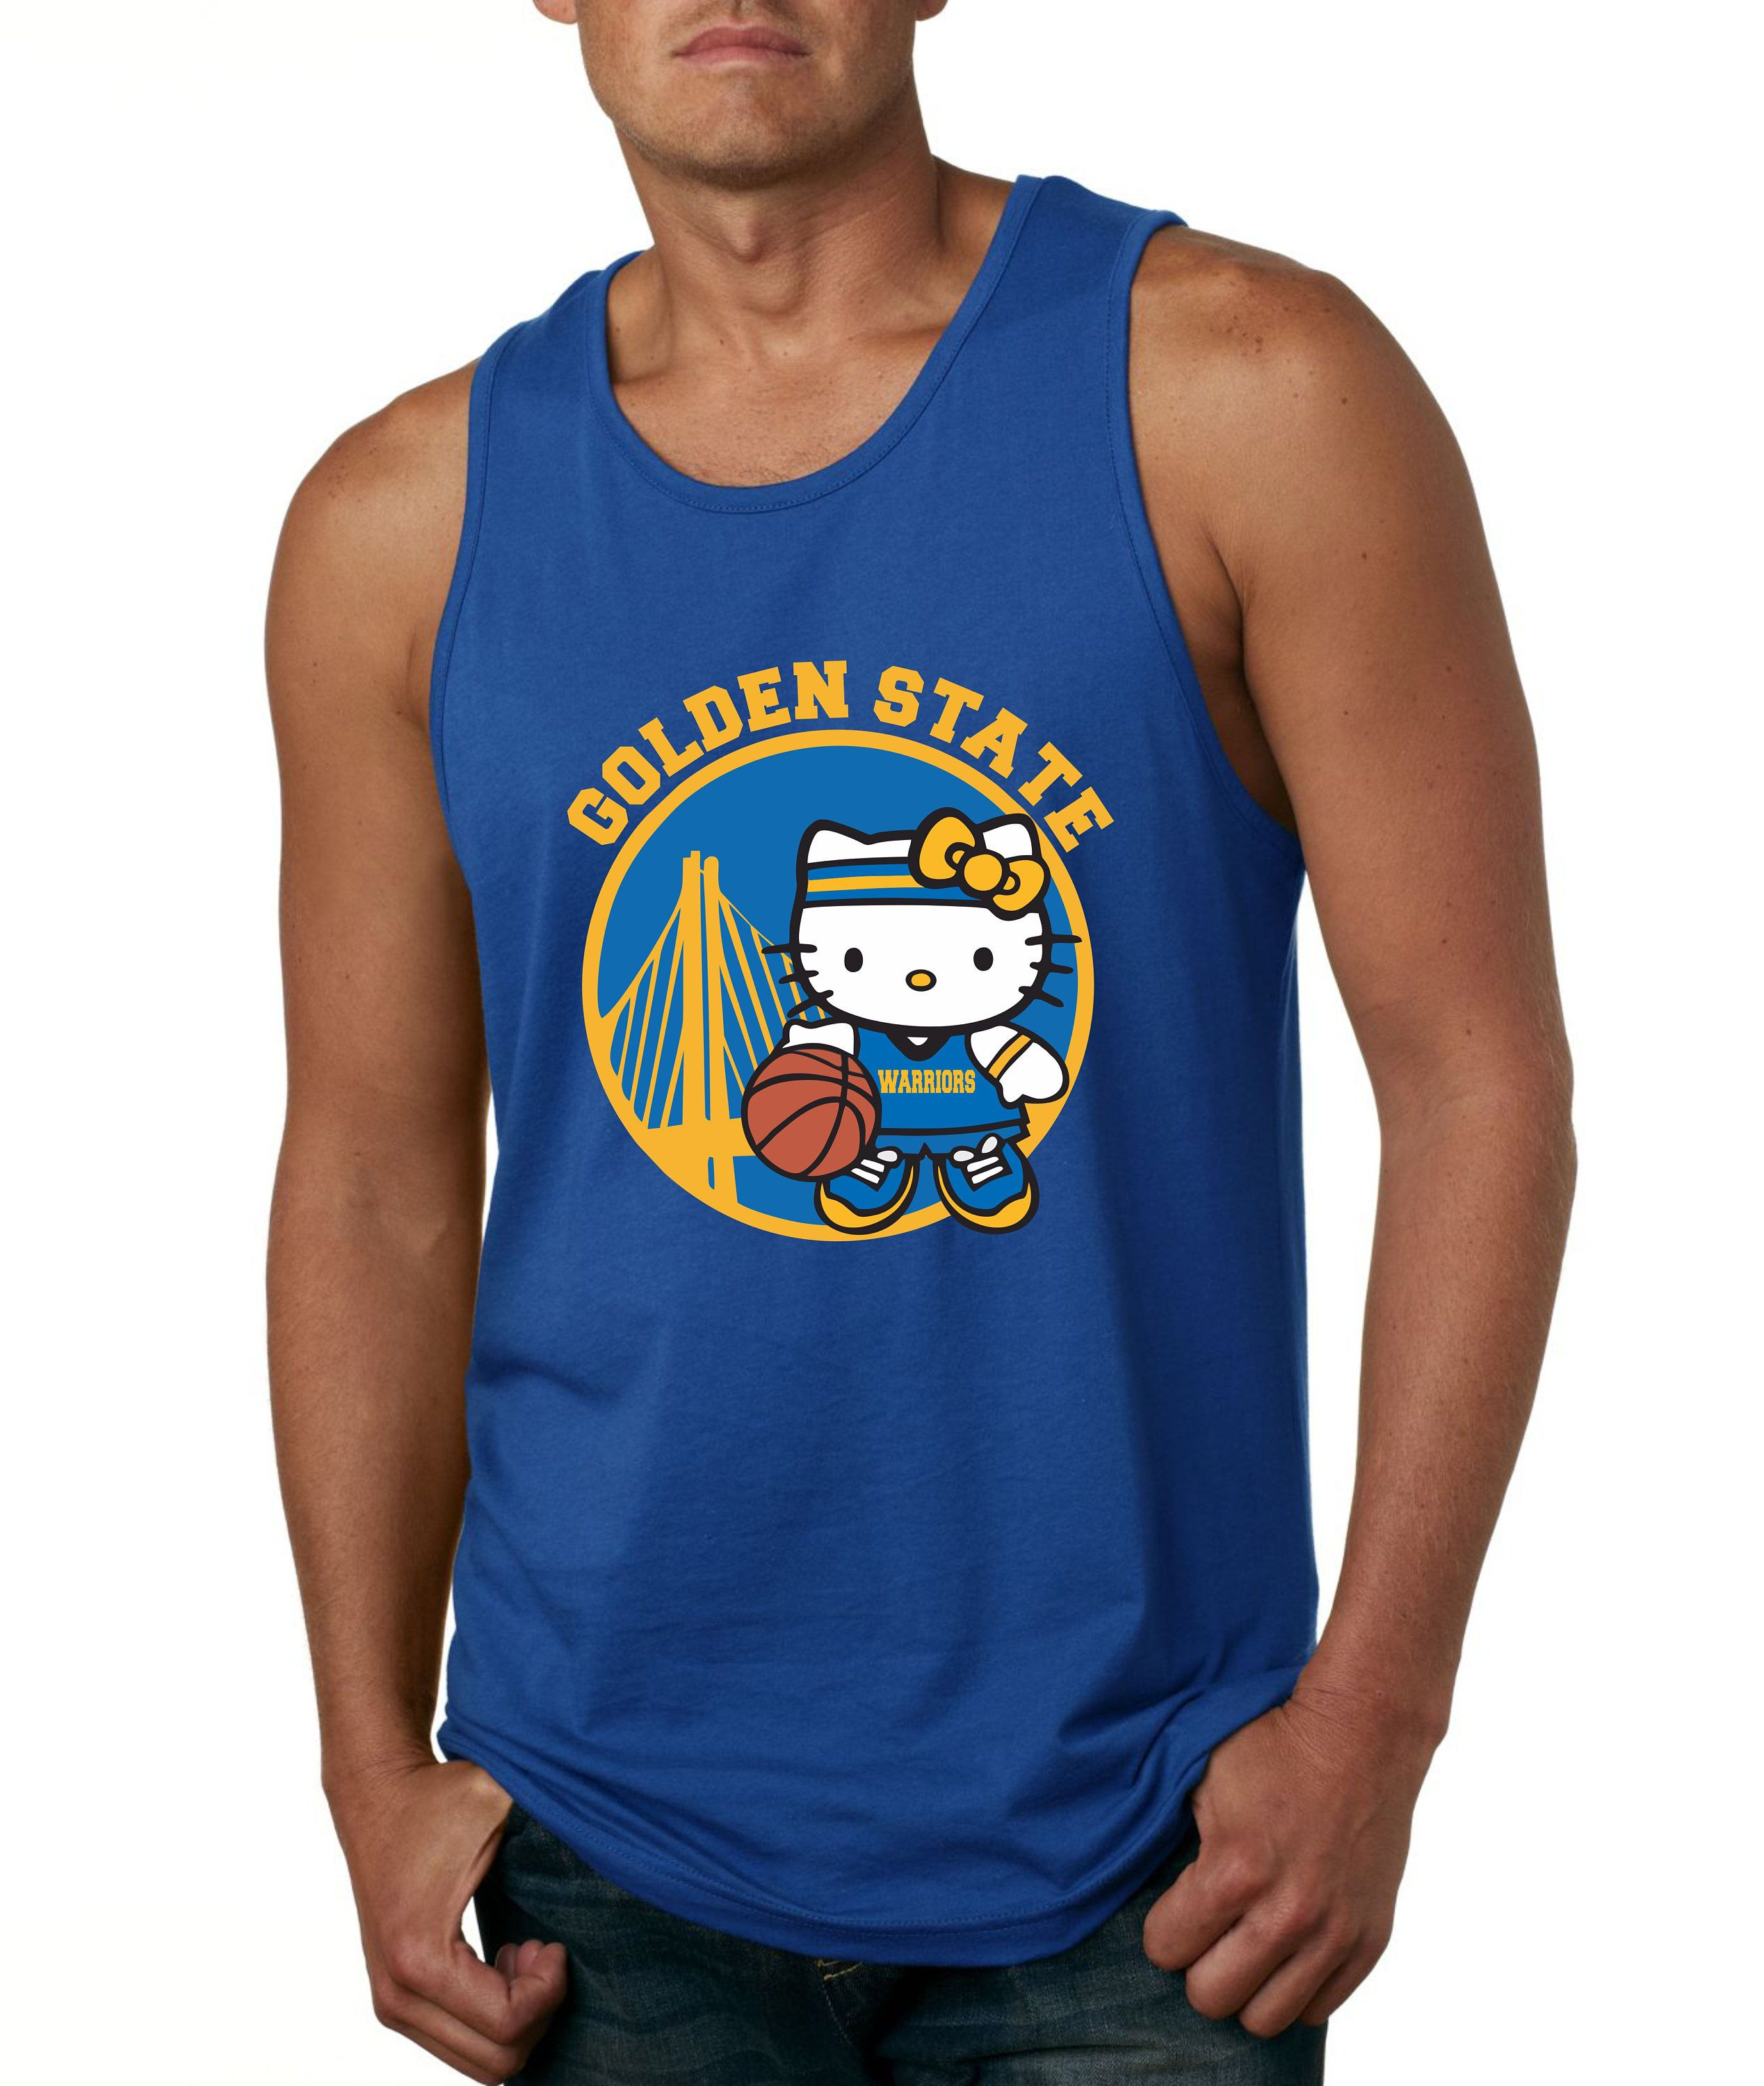 Hello Kitty Golden state ,champions Warriors,Tee shirt basketball love sport nice cute tanktop,v-neck,crew neck by GoCustom on Etsy